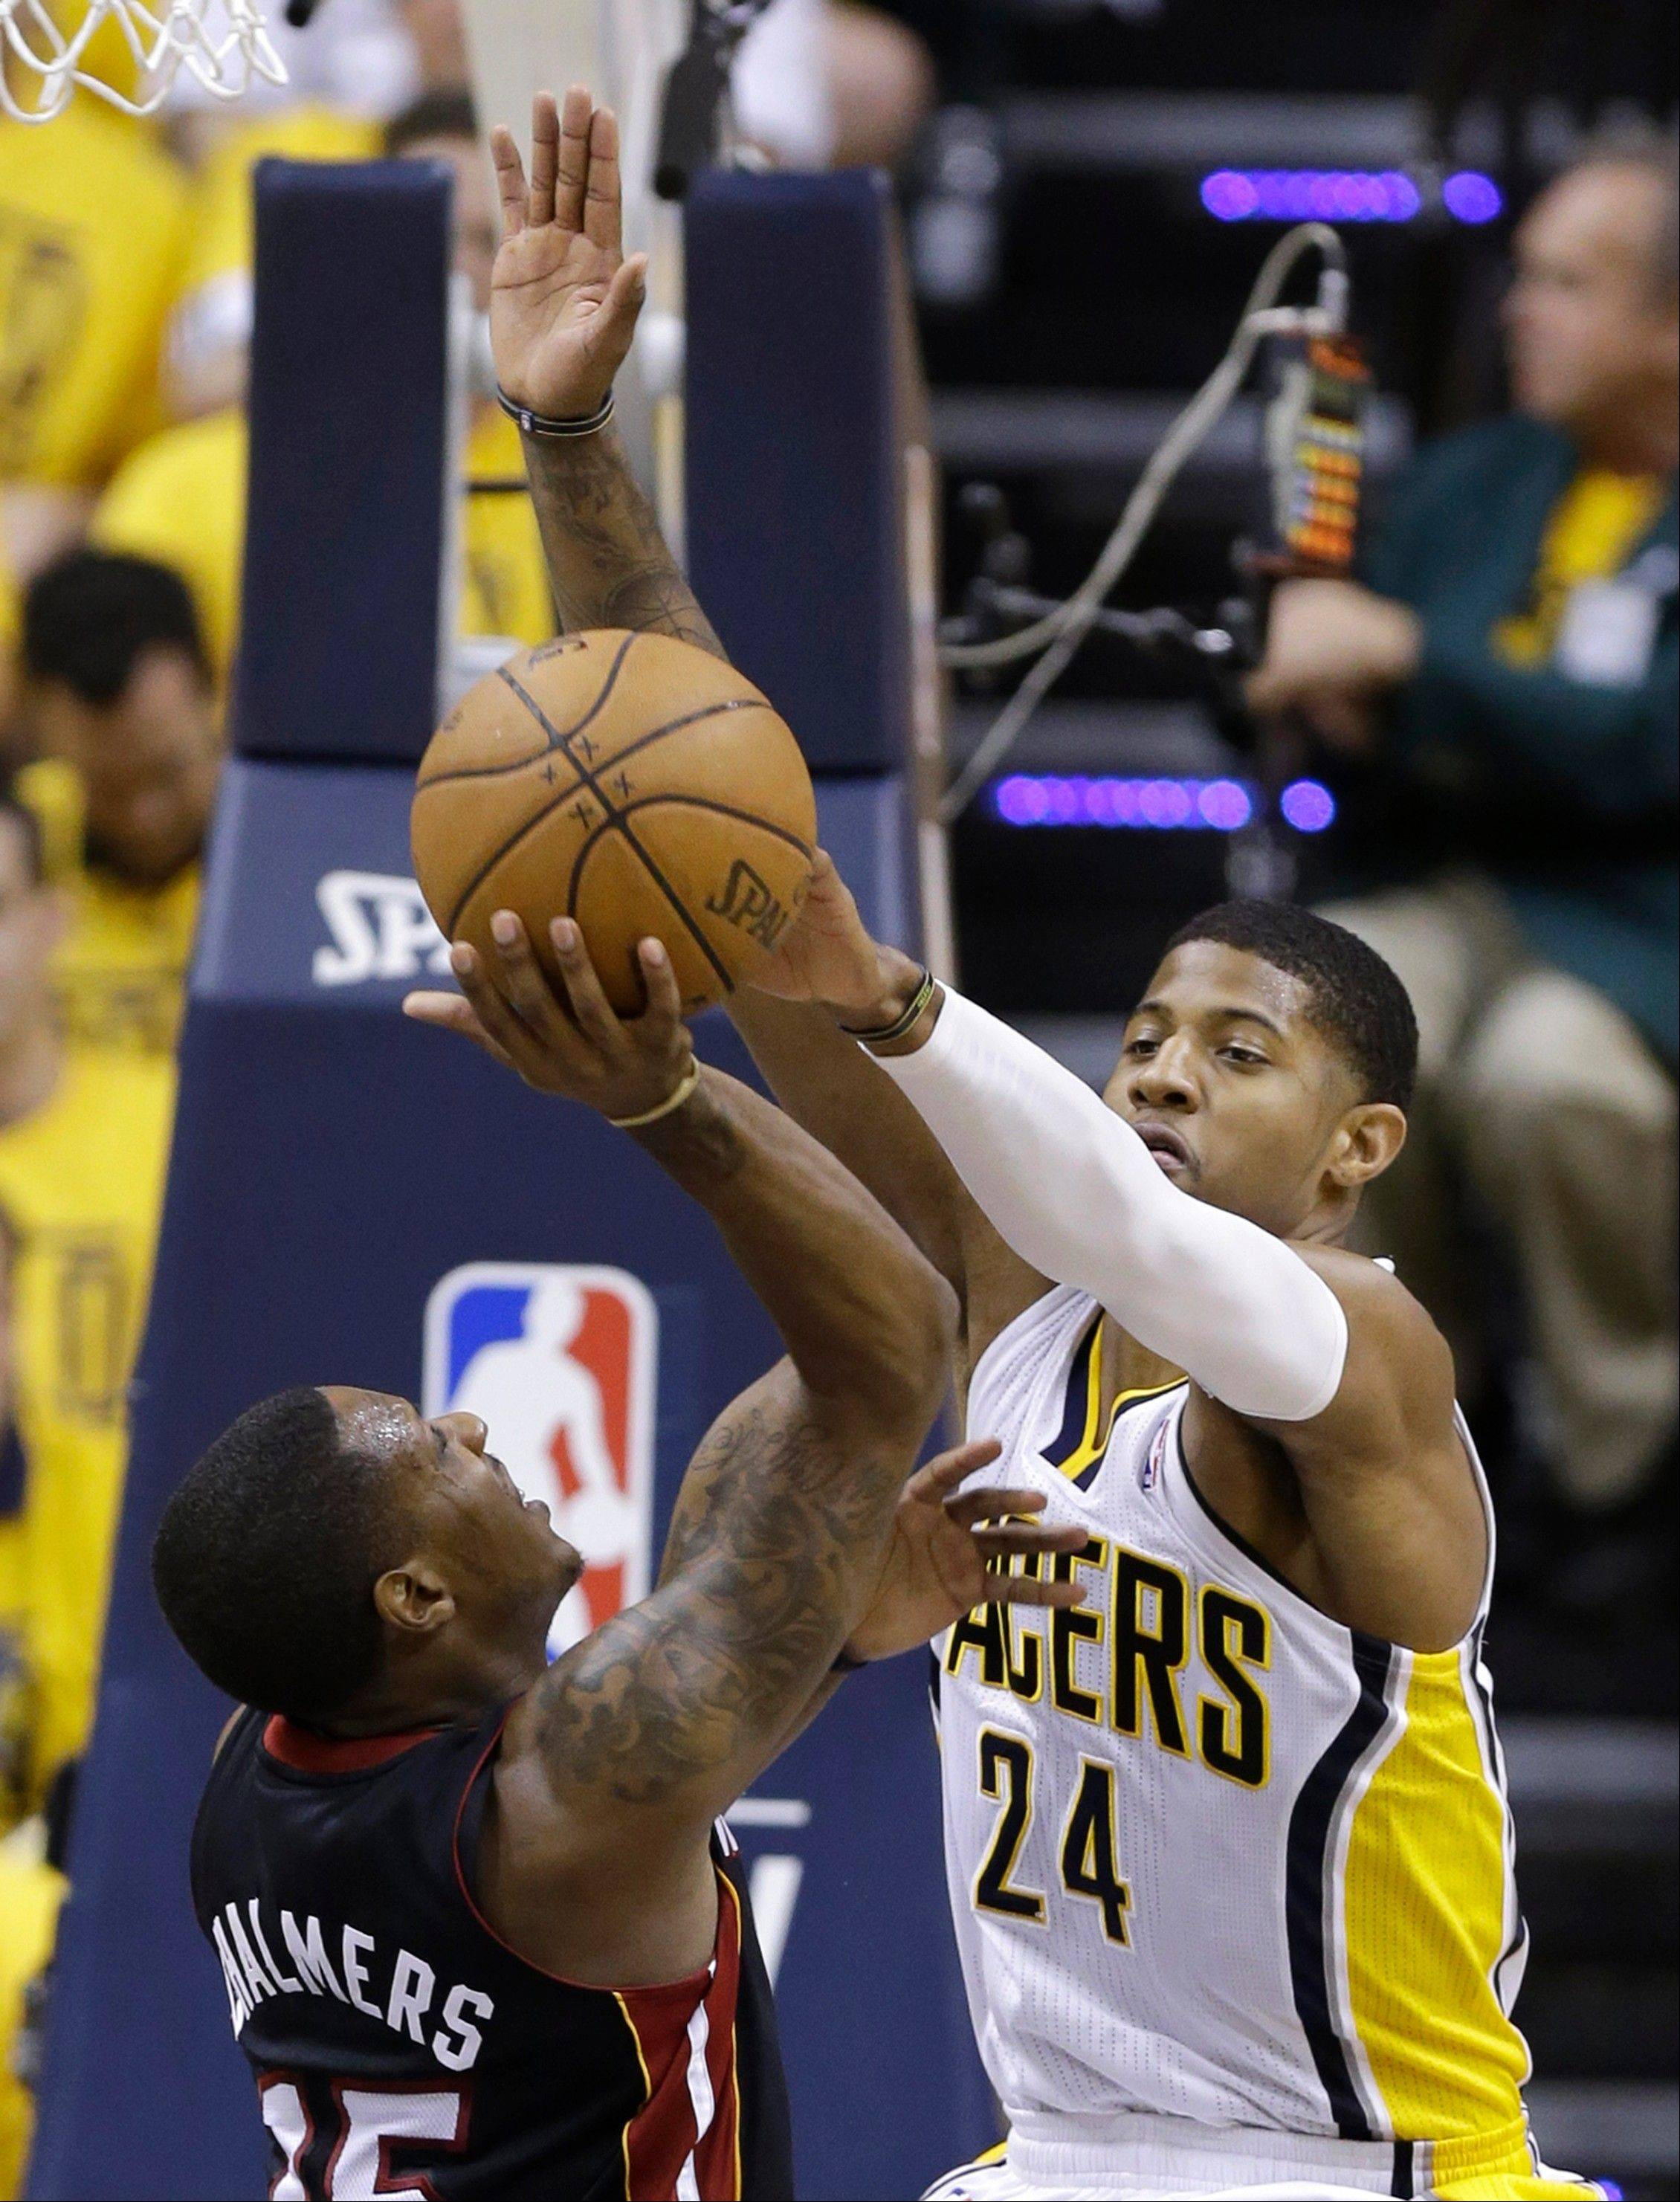 Miami Heat's Mario Chalmers has his shot blocked by Indiana Pacers' Paul George (24) during the second half of Game 4 of the NBA basketball Eastern Conference finals, Tuesday, May 28, 2013, in Indianapolis.